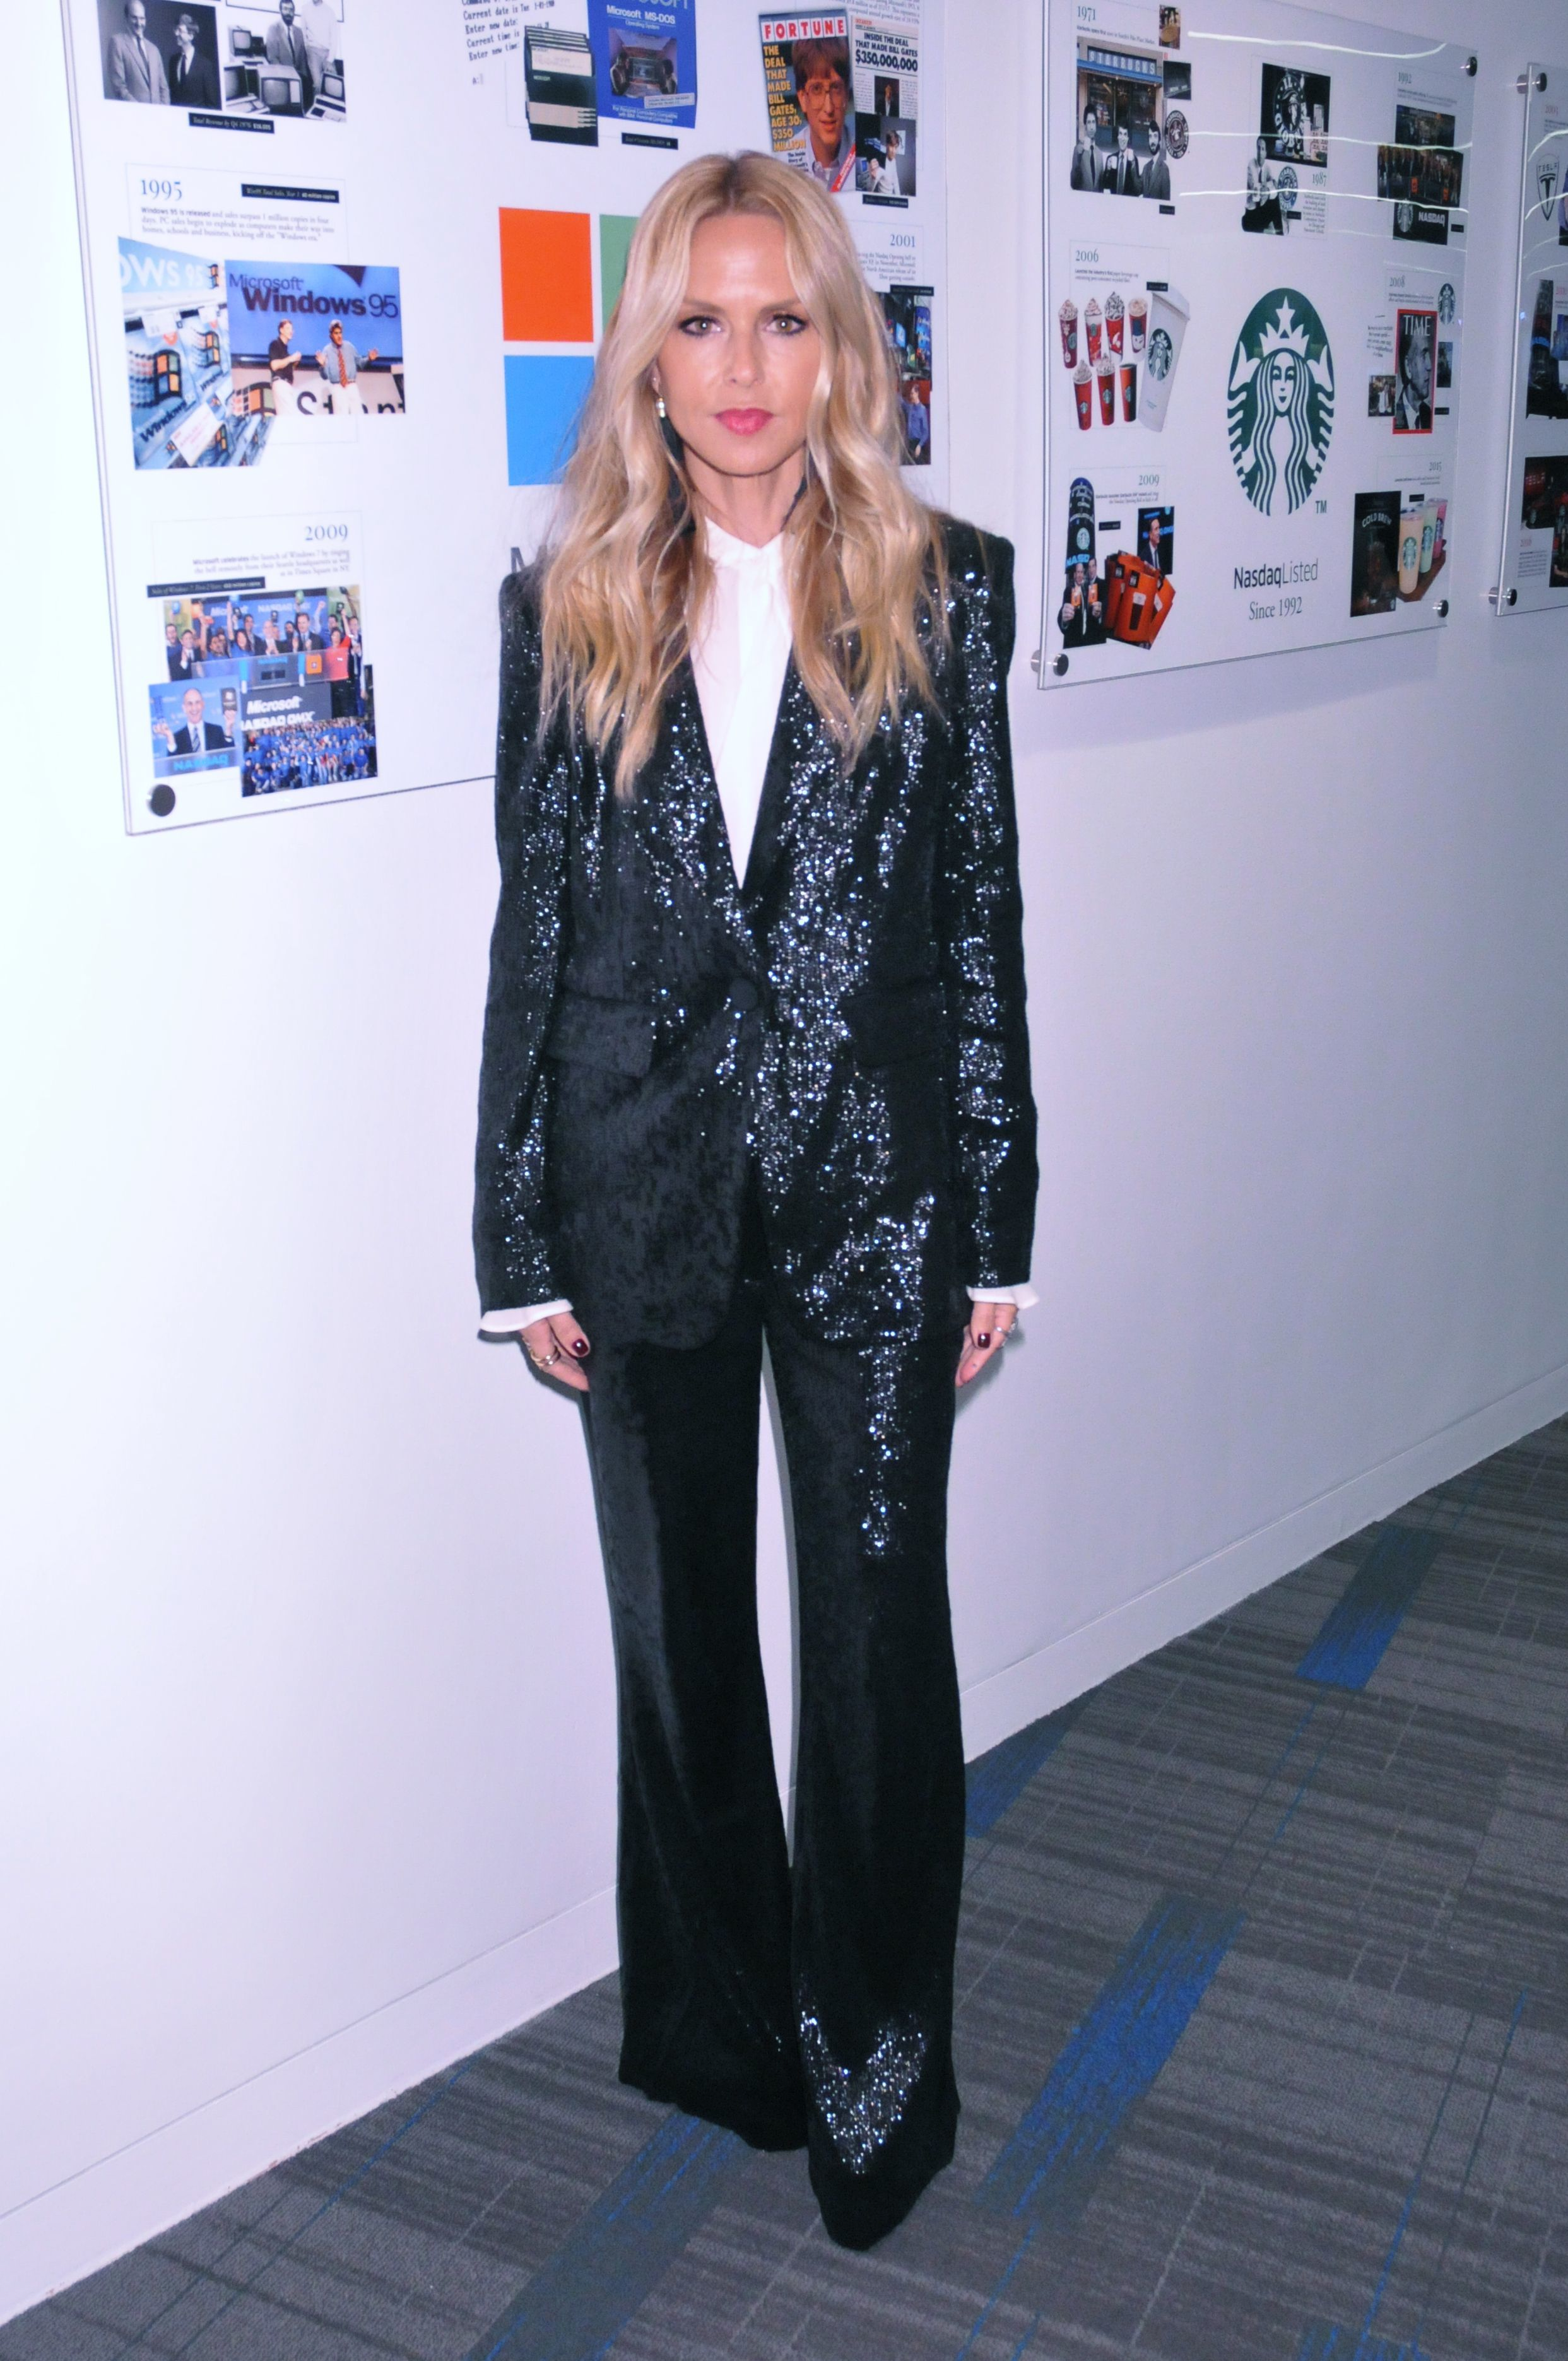 Rachel Zoe appears at the Transforming Digital with Revolutionary Style seminar in New York City on Sept. 26, 2017.